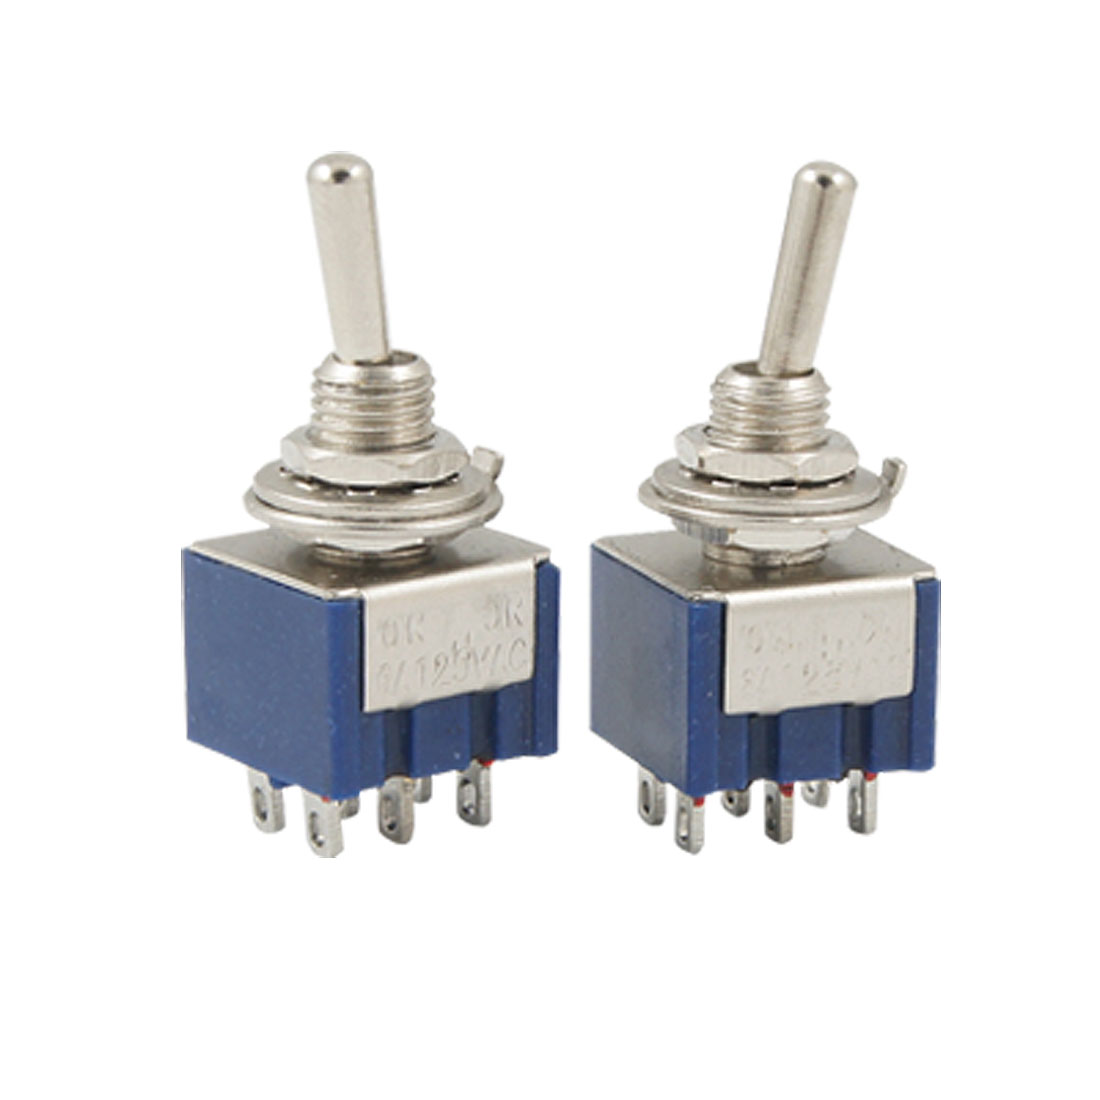 2 Pcs AC 125V 6A Blue Mini DPDT ON/ON Toggle Switchs w 6 Terminals